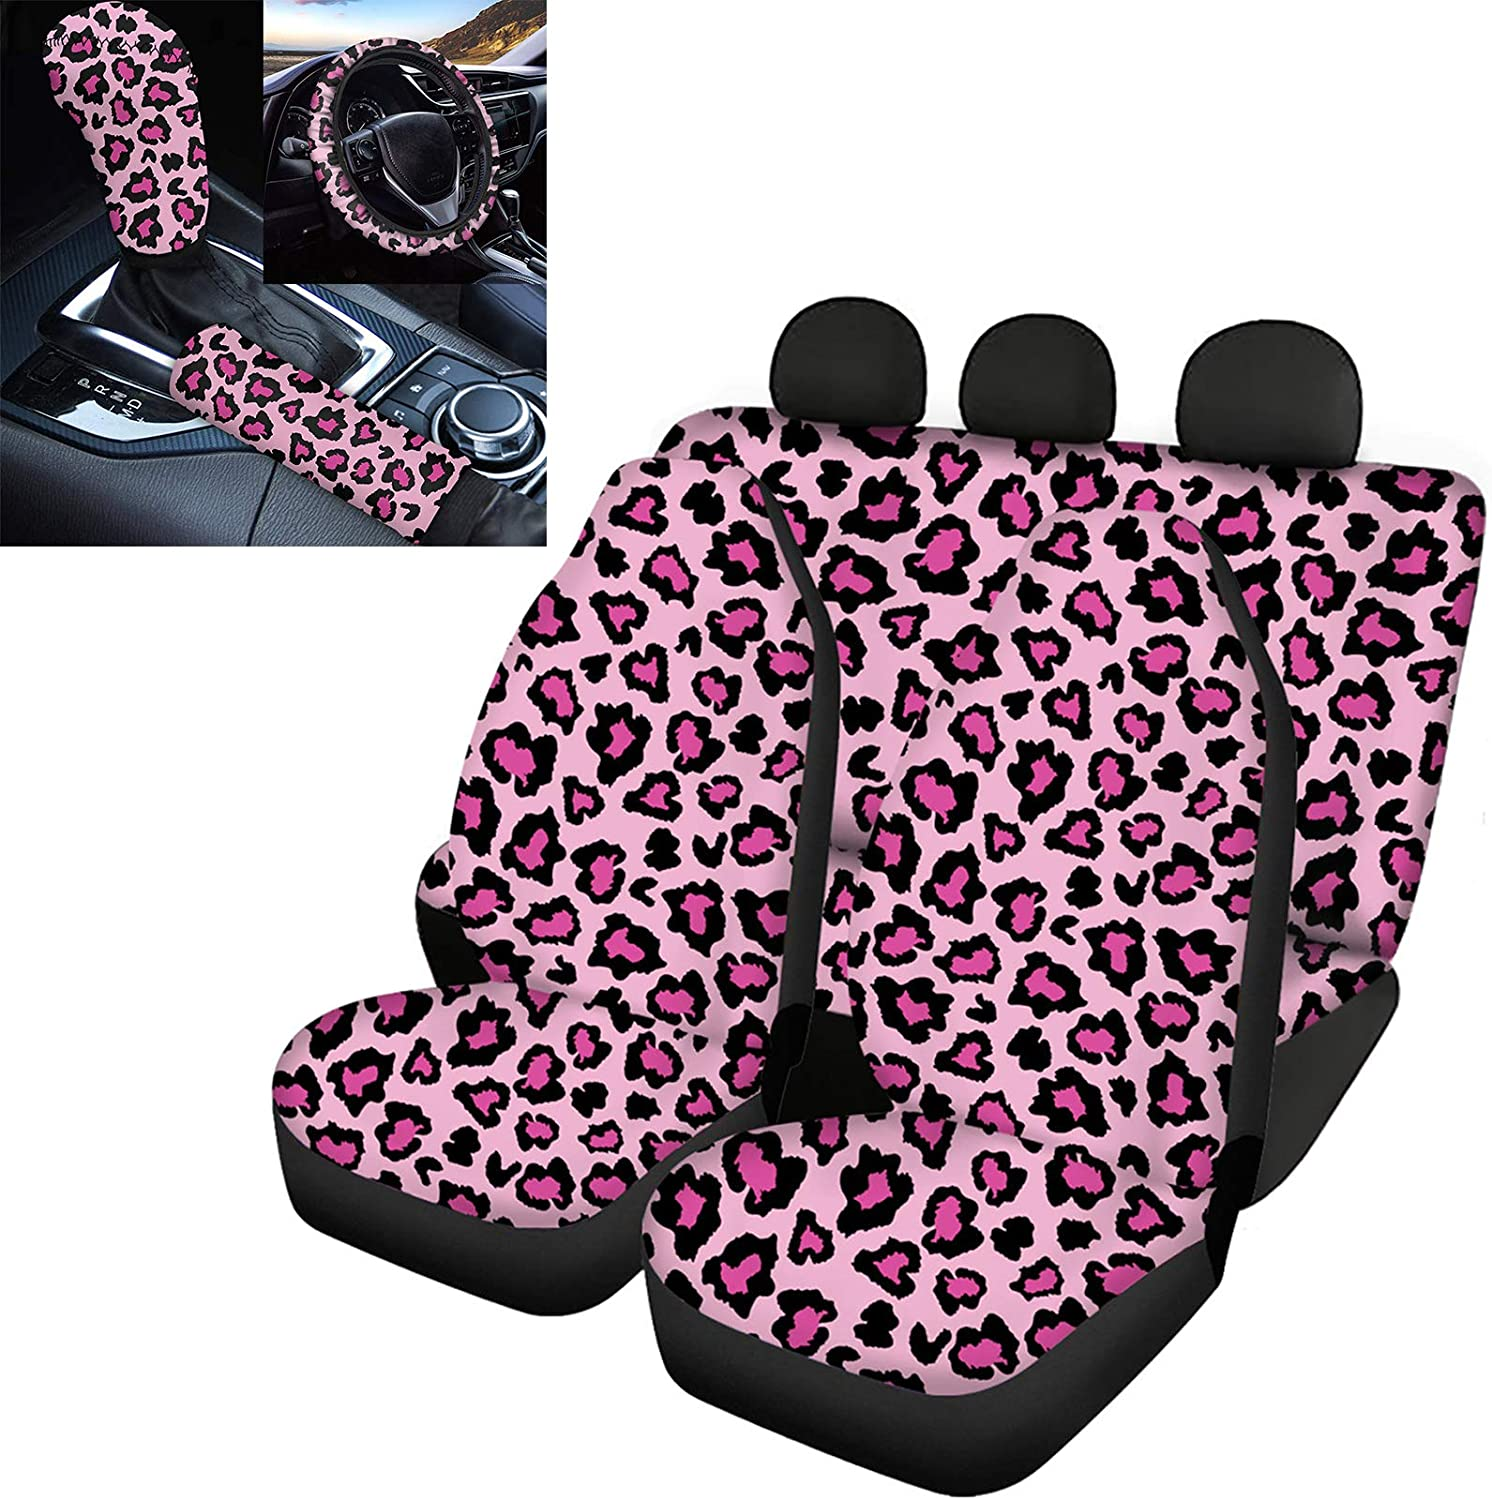 GLENLCWE Pink Leopard Print Max 67% OFF Car Seat with Courier shipping free Wh Steering Set Covers